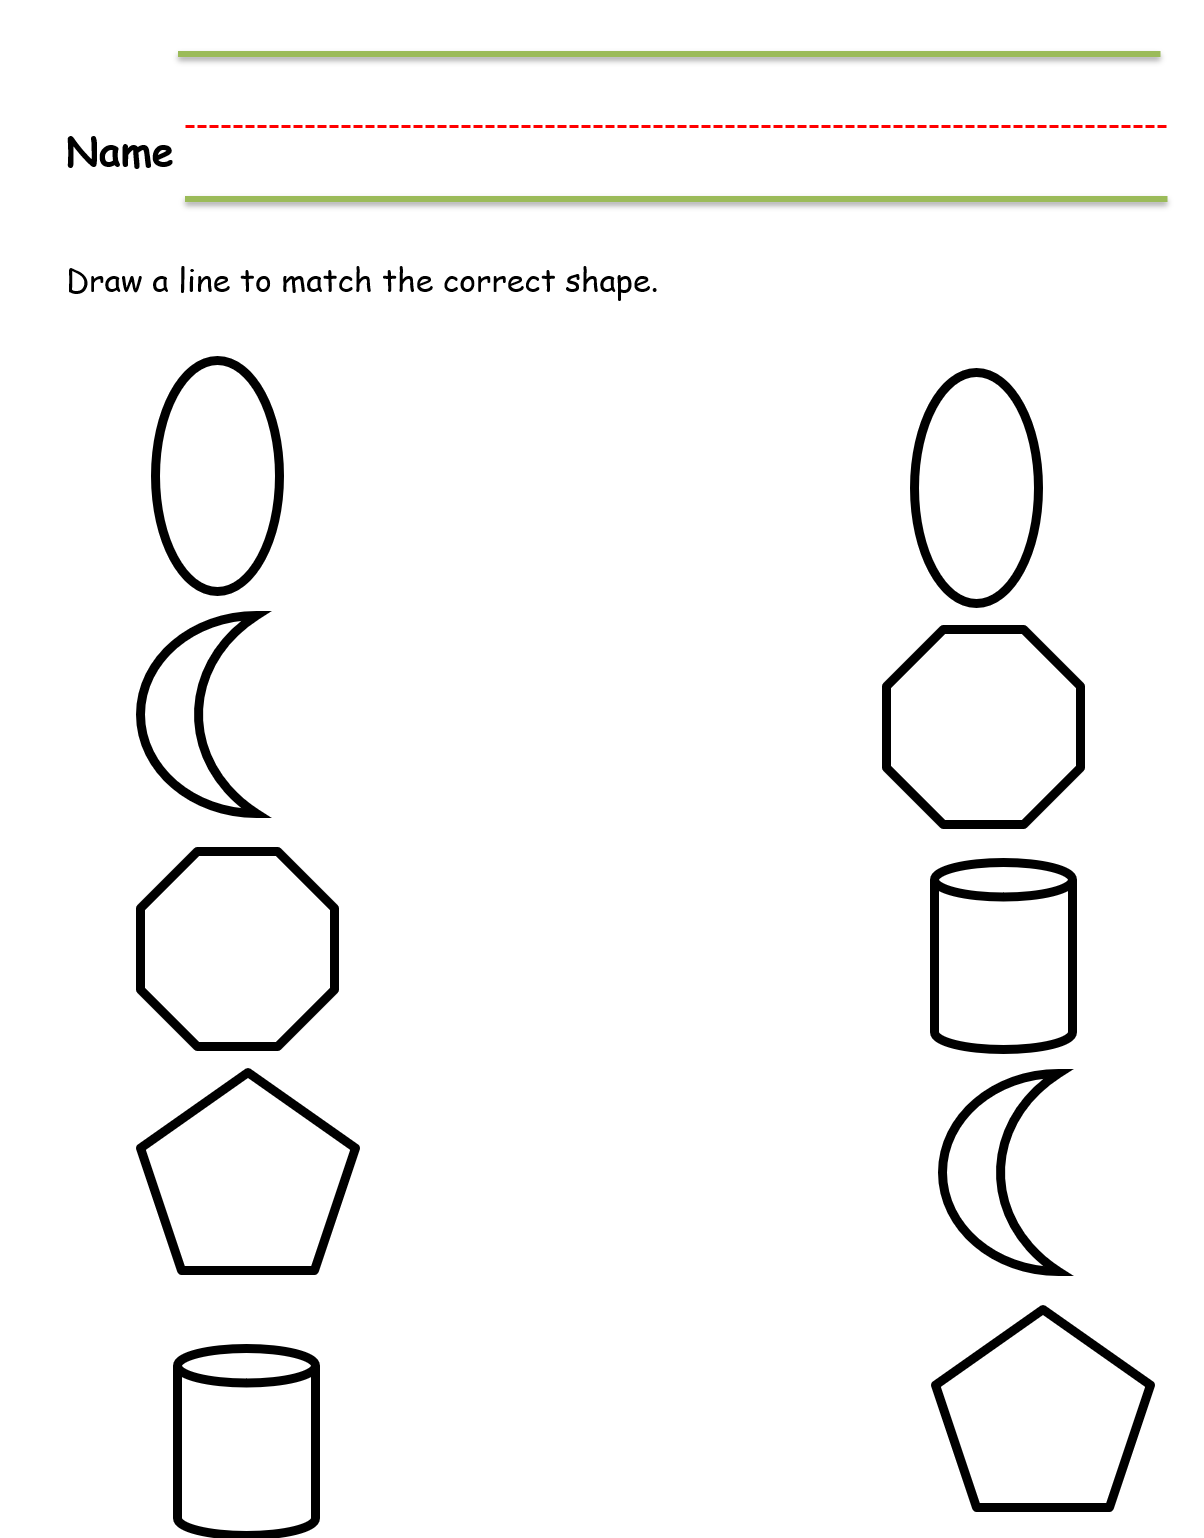 Kindergarten Worksheet Matching Shapes Black Amp White In